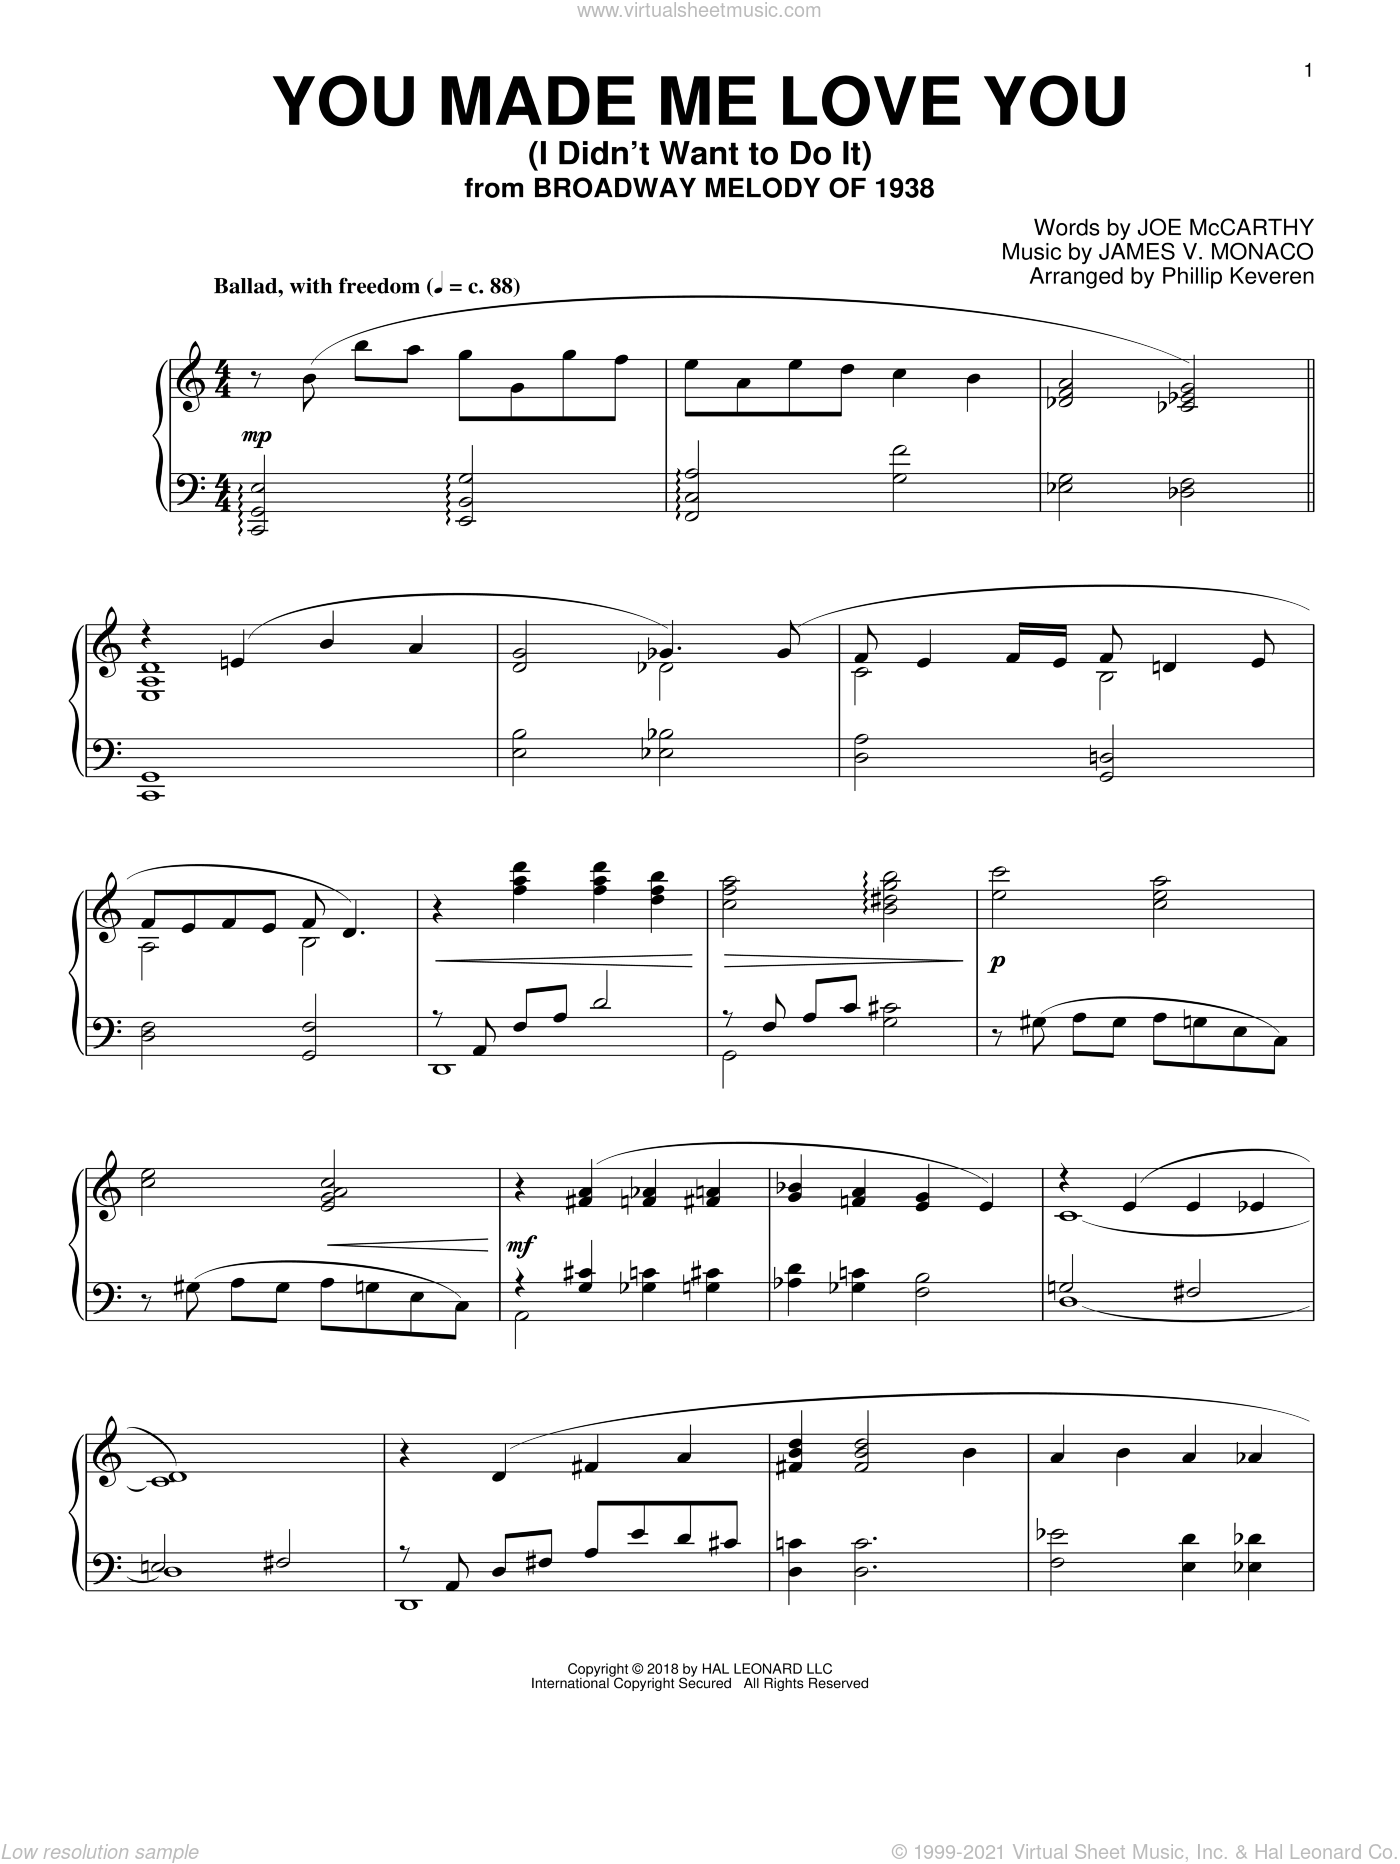 You Made Me Love You (I Didn't Want To Do It) [Jazz version] (arr. Phillip Keveren) sheet music for piano solo by James Monaco, Phillip Keveren and Joe McCarthy, intermediate skill level